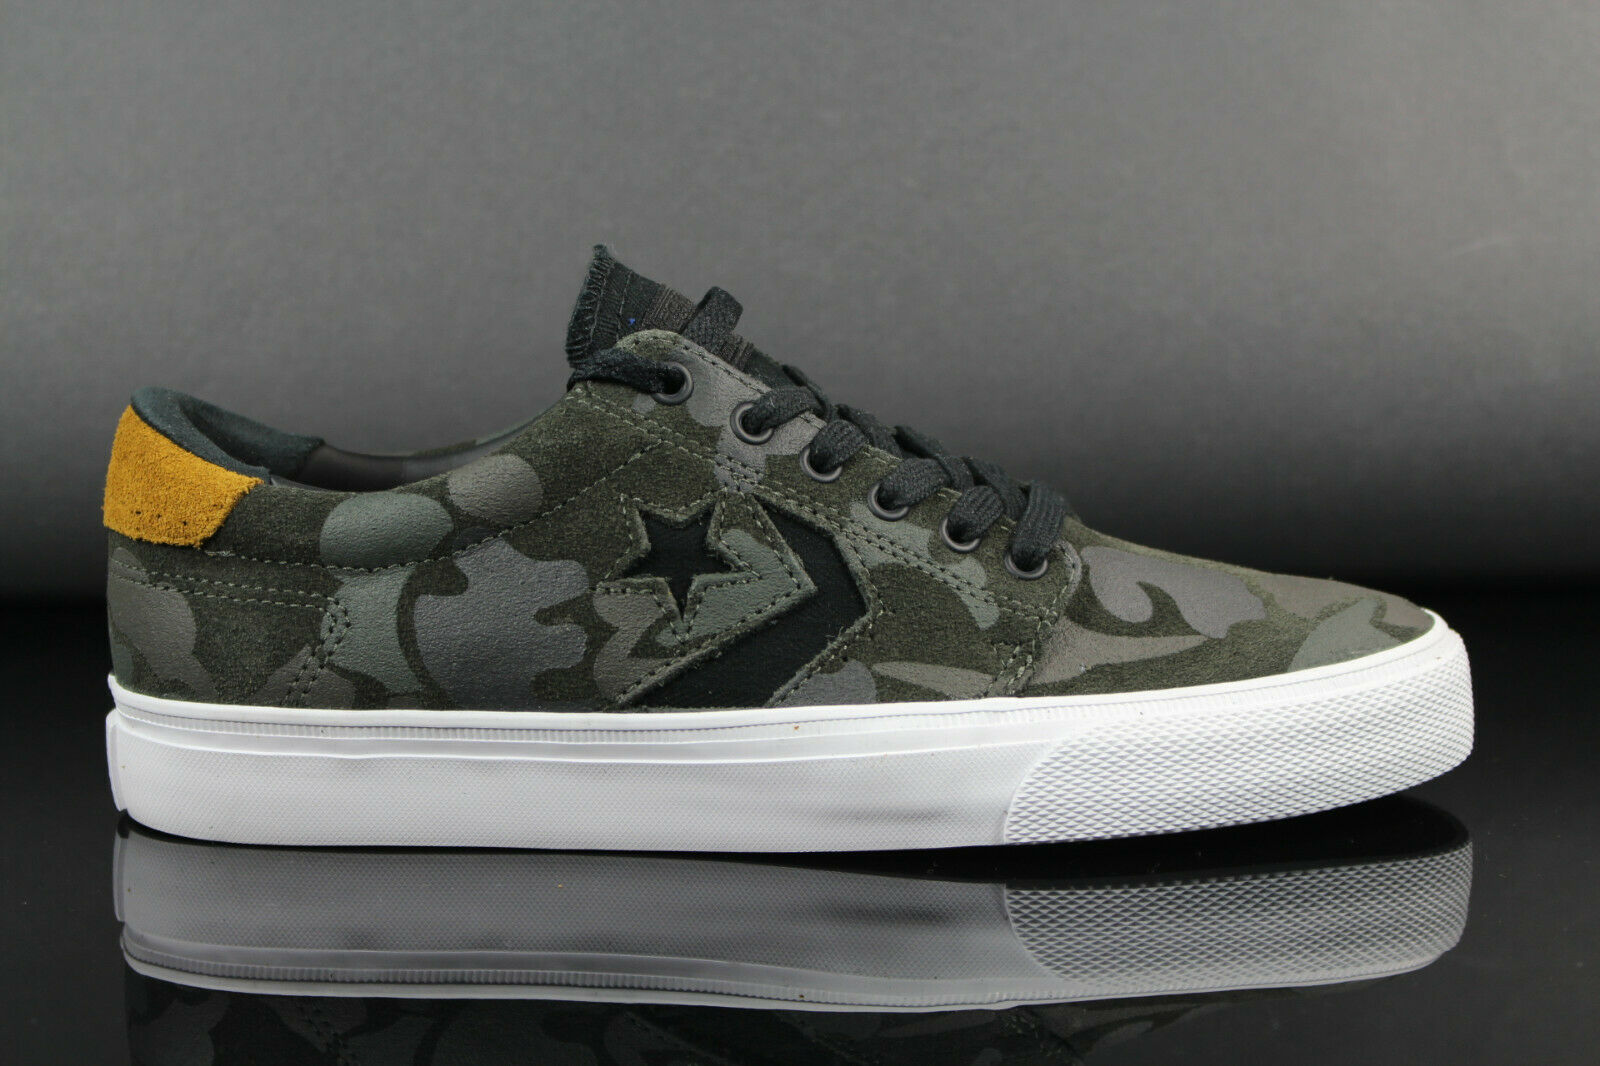 NEW Converse KA3 Camo Ox Leather Unisex Trainers Sport shoes shoes 153519C